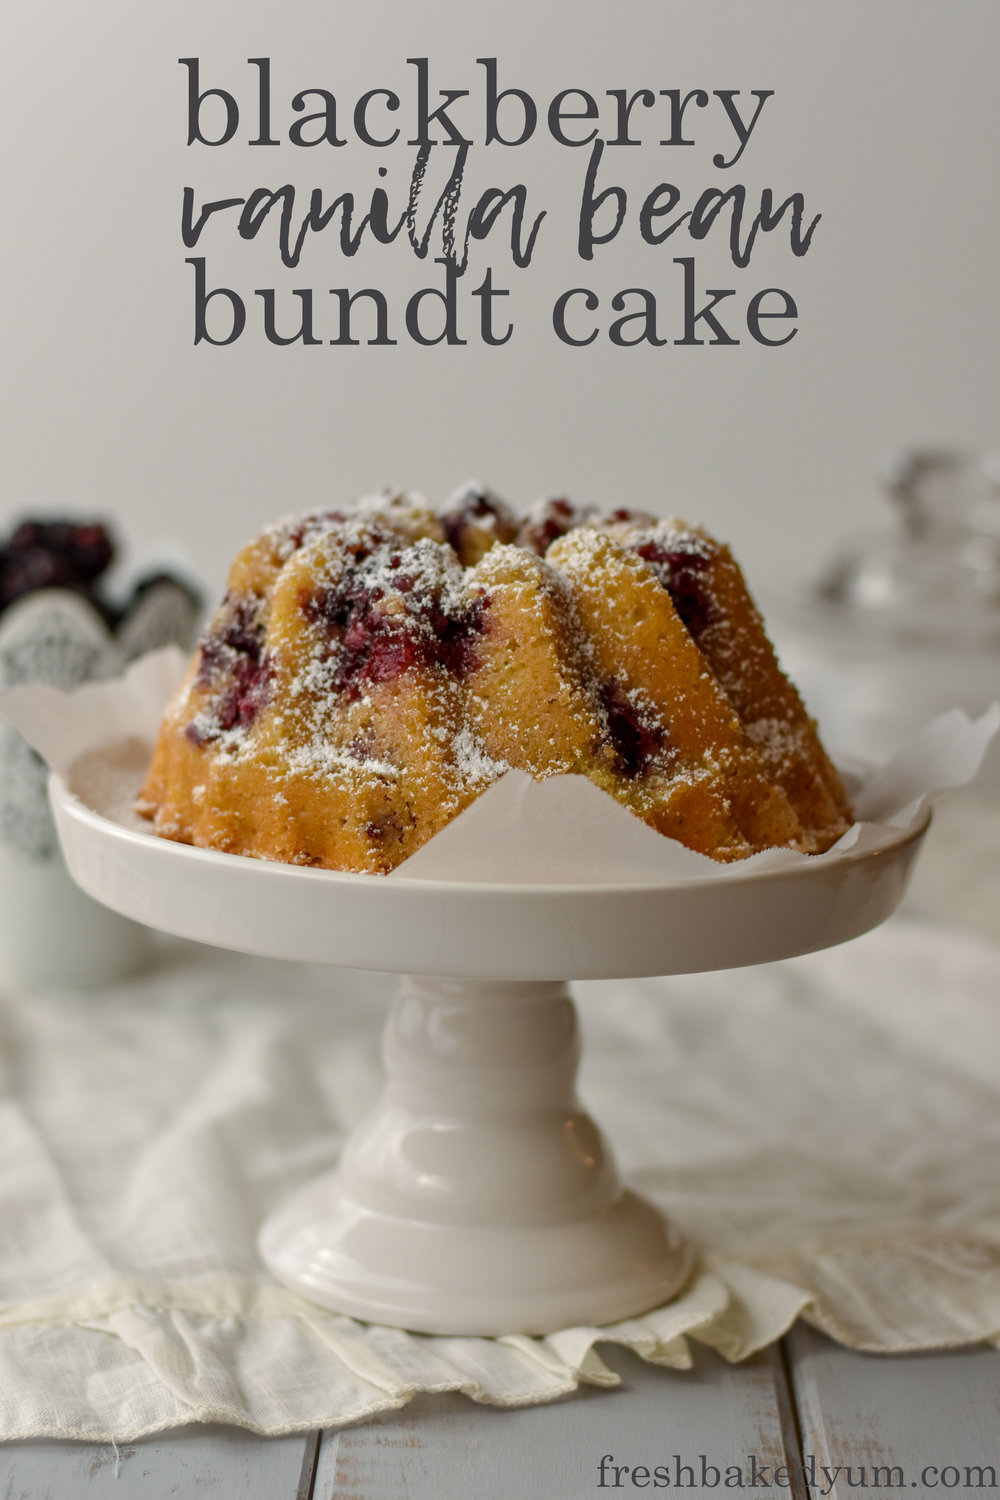 blackberry vanilla bean bundt cake recipe pinterest grpahic 1.jpg